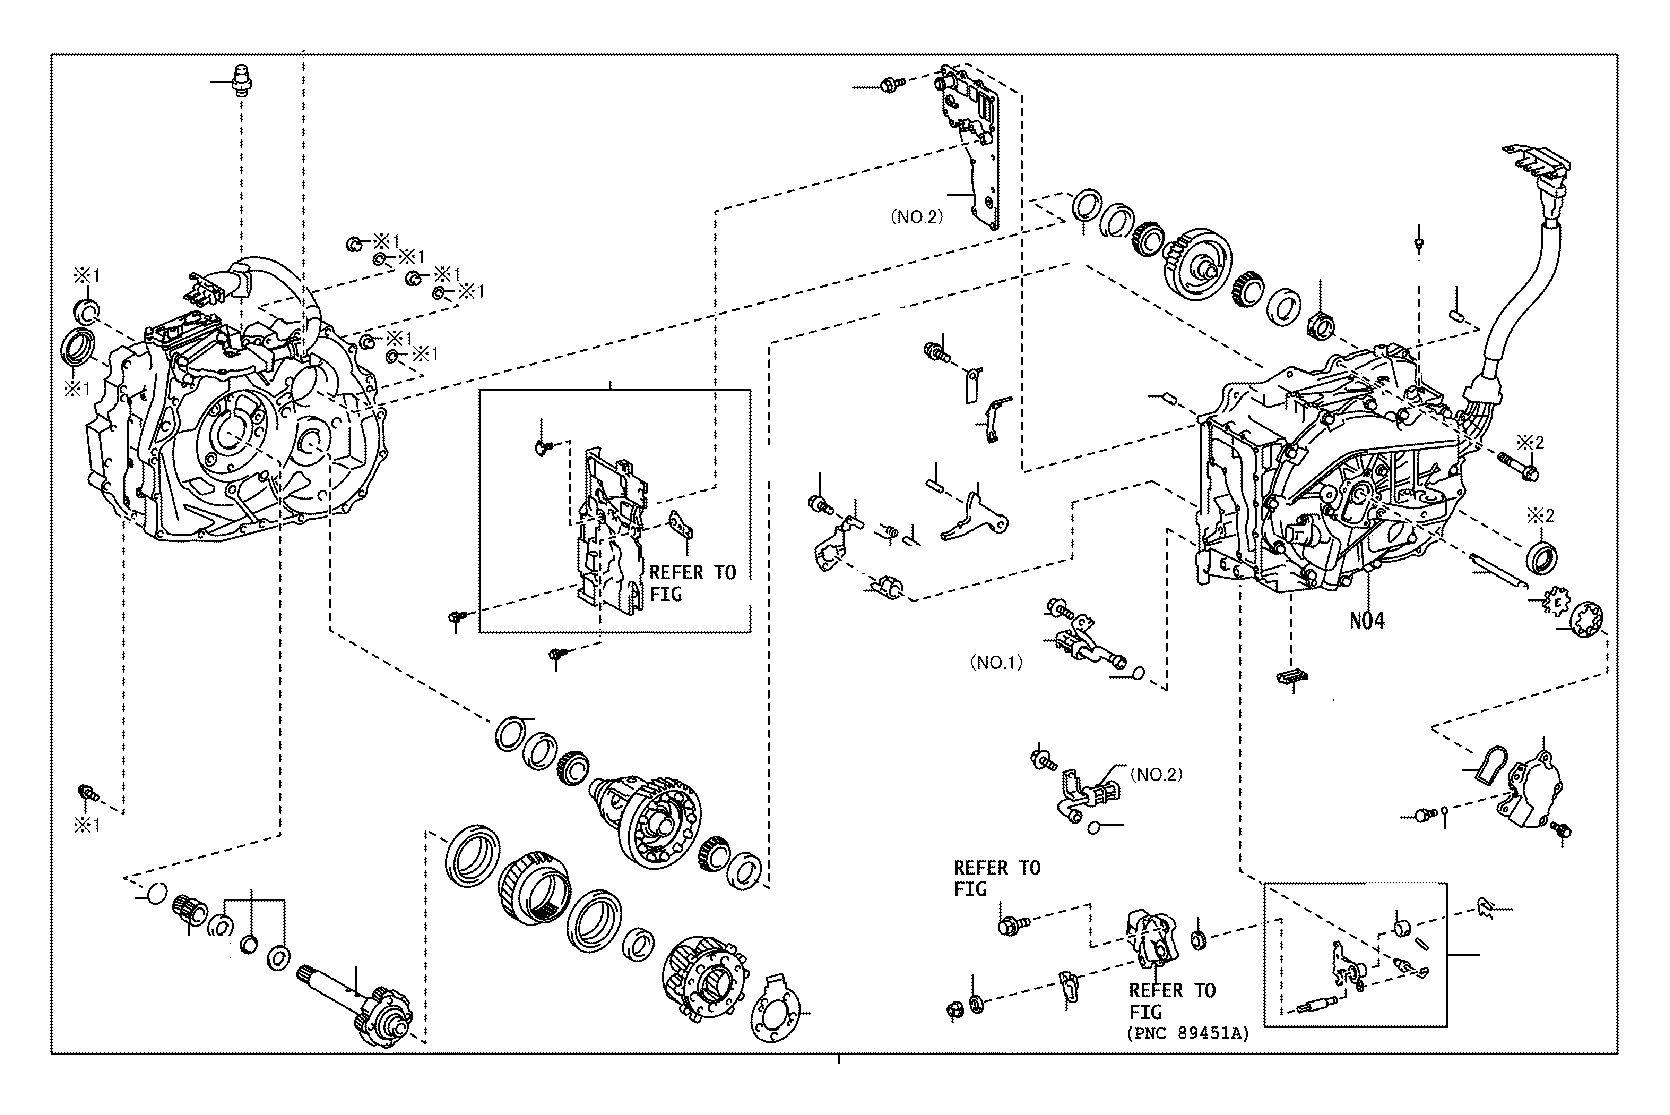 Toyota Corolla Transaxle Assembly Hybrid Vehicle